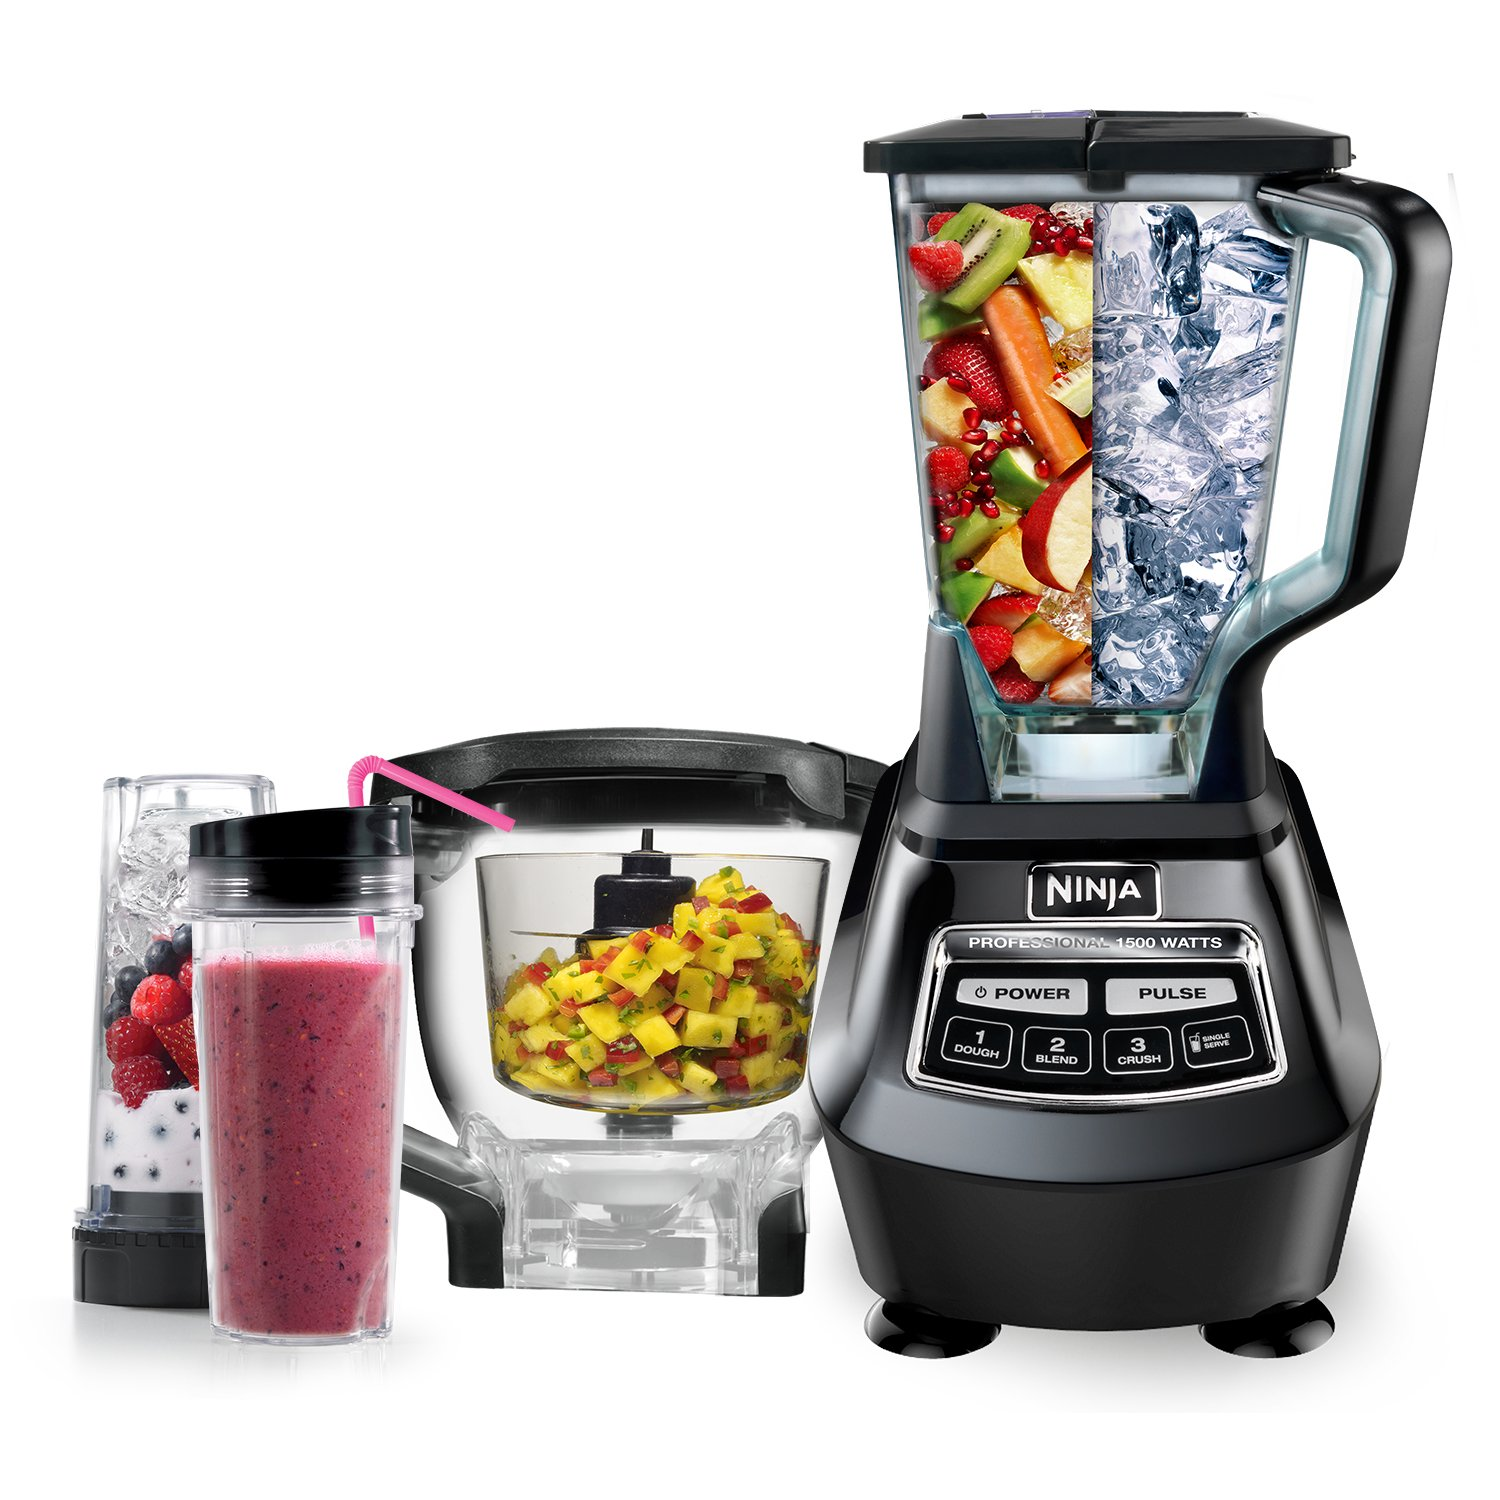 ninja mega kitchen system bl771 amazon ca home kitchen rh amazon ca Ninja Blender Food Processor Attachment Ninja Blender Food Processor Attachment